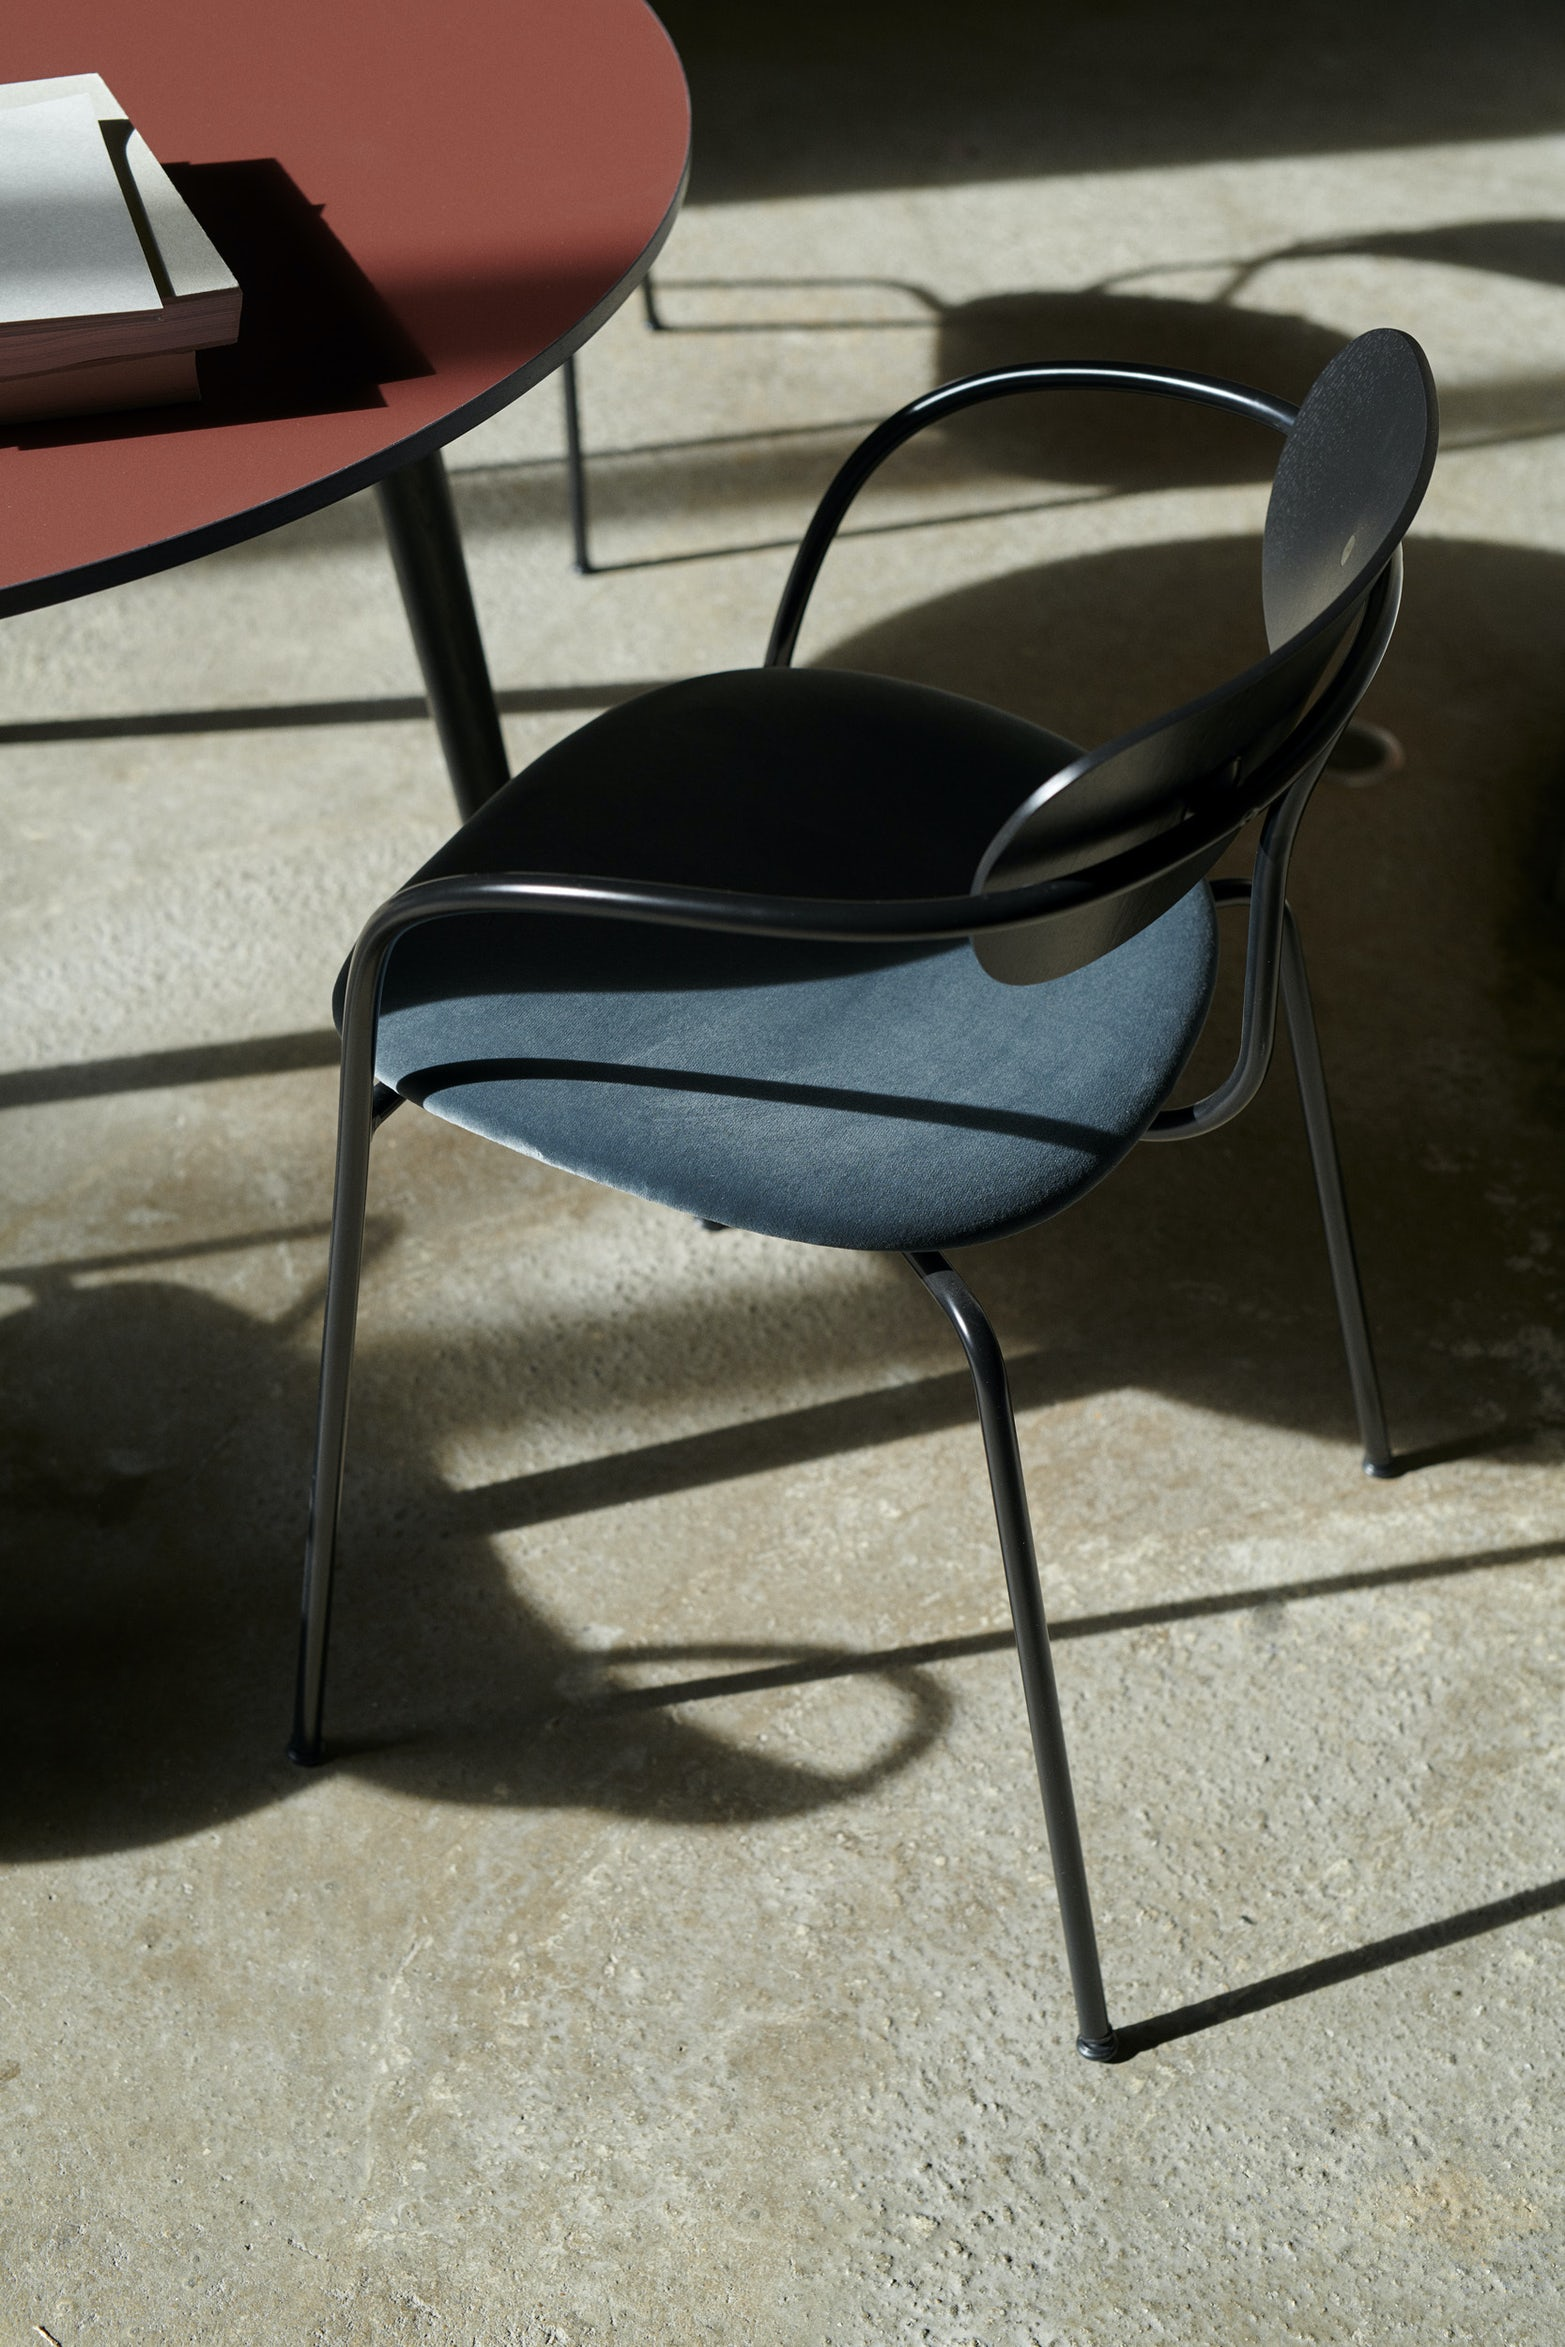 Pavilion armchair av4 anderssen and voll andtradition 37